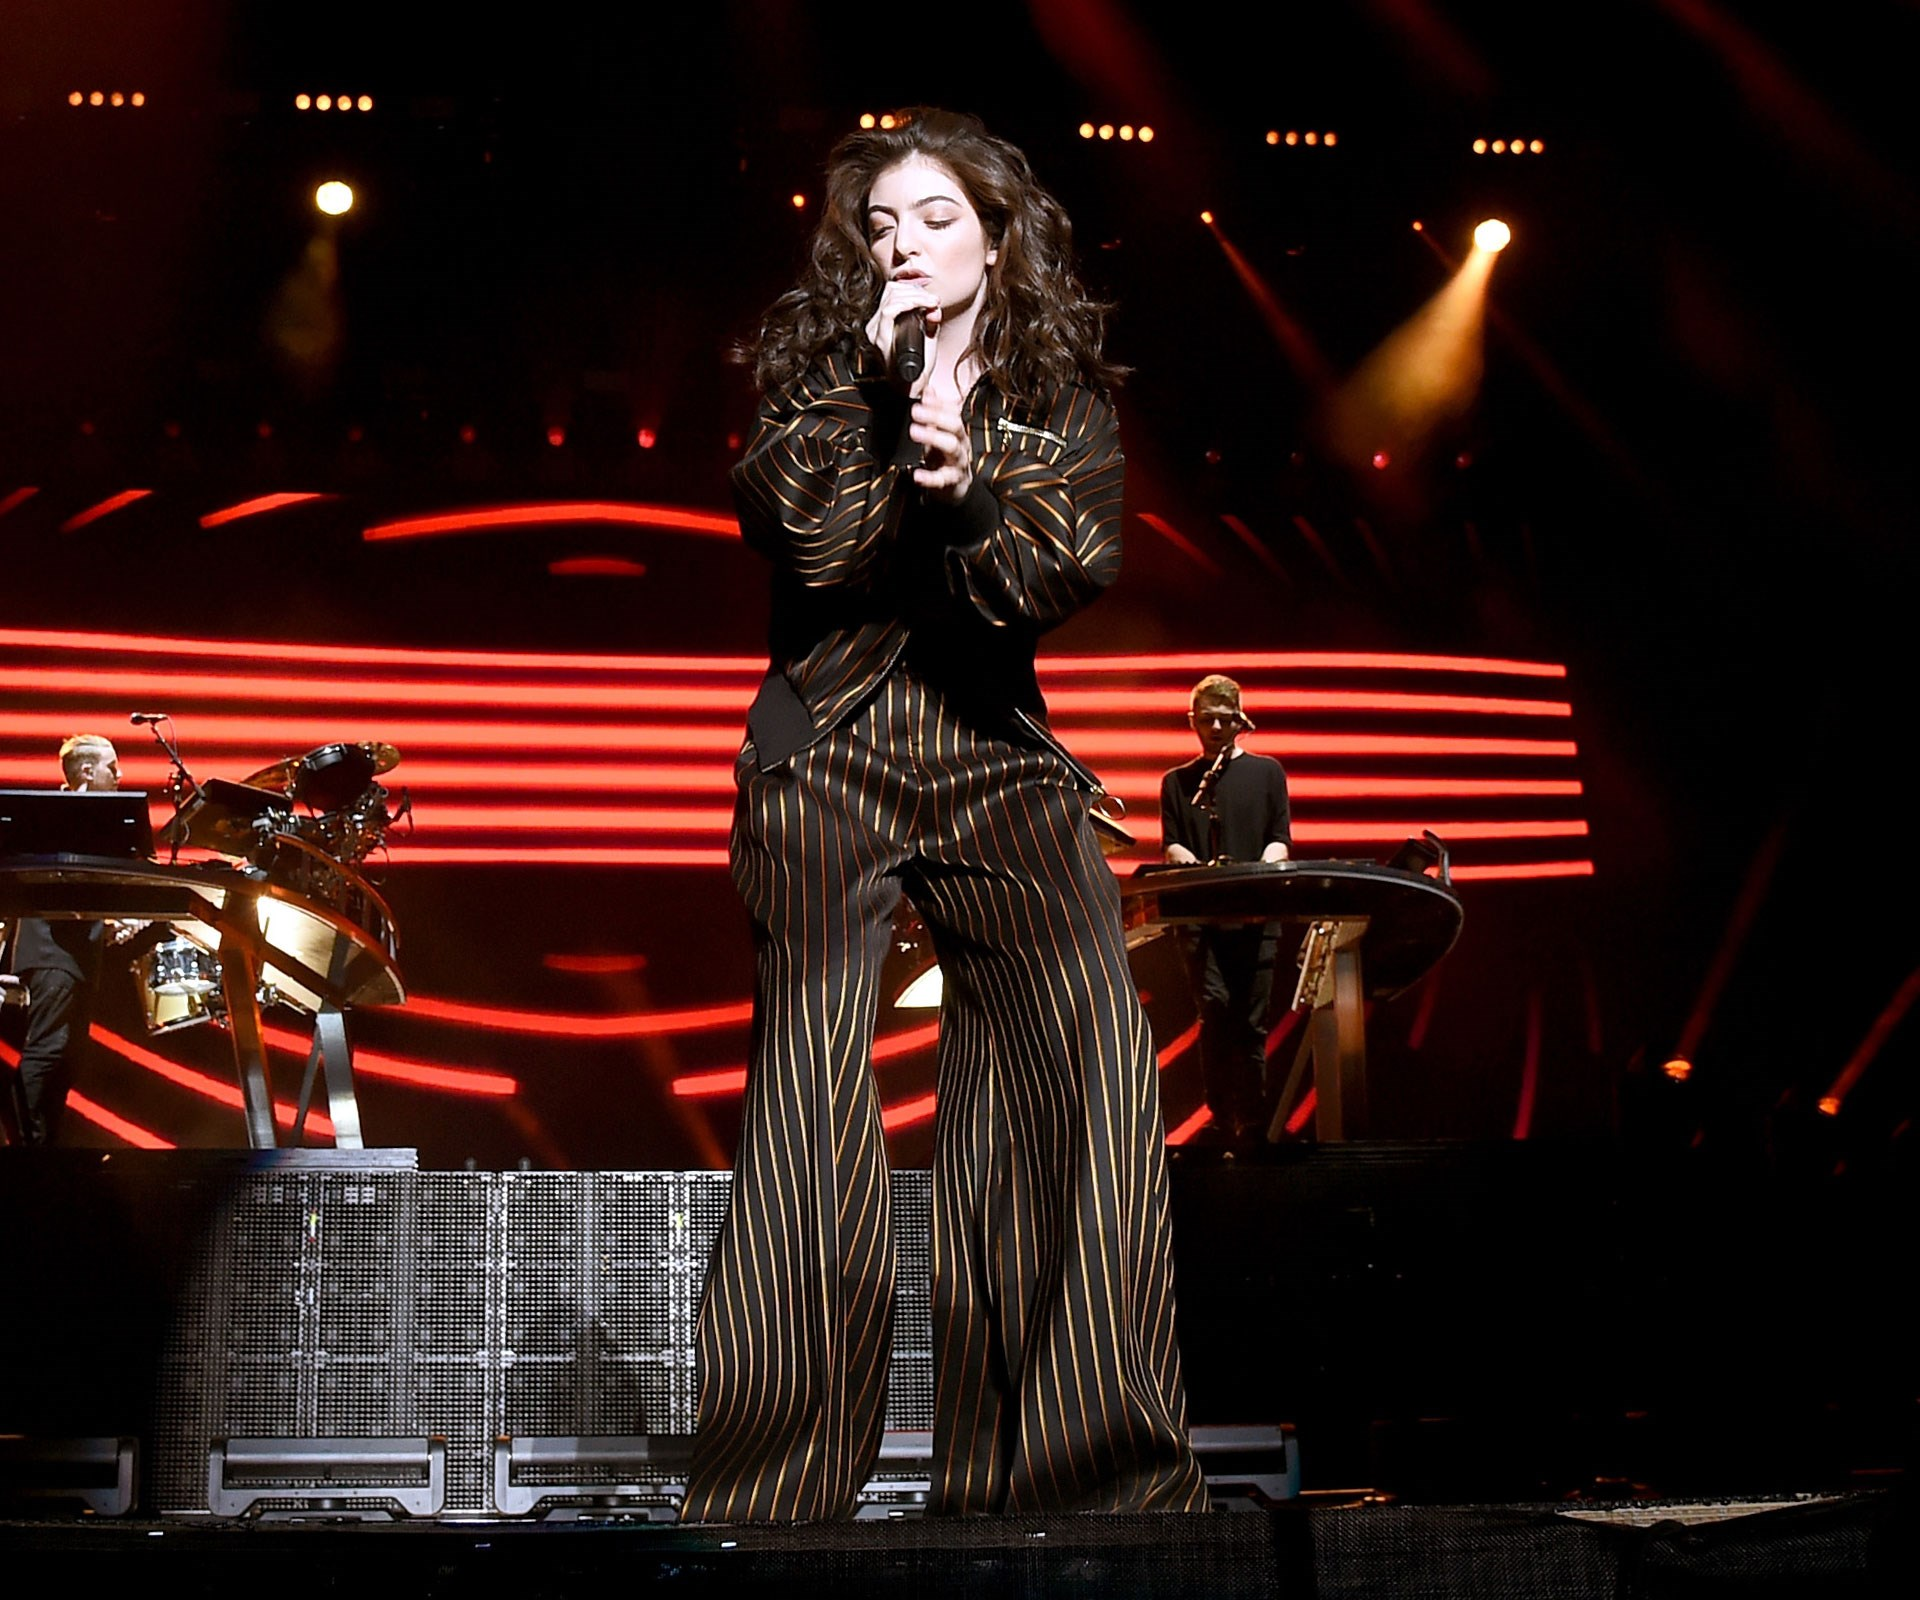 "[**Apr 18, 2016**](http://www.womansday.co.nz/celebrity/new-zealand-celebrities/lorde-sends-crowd-crazy-at-coachella-4501|target=""_blank"") The star performed her hit 'Magnets' to an energetic crowd. Photo: Getty."